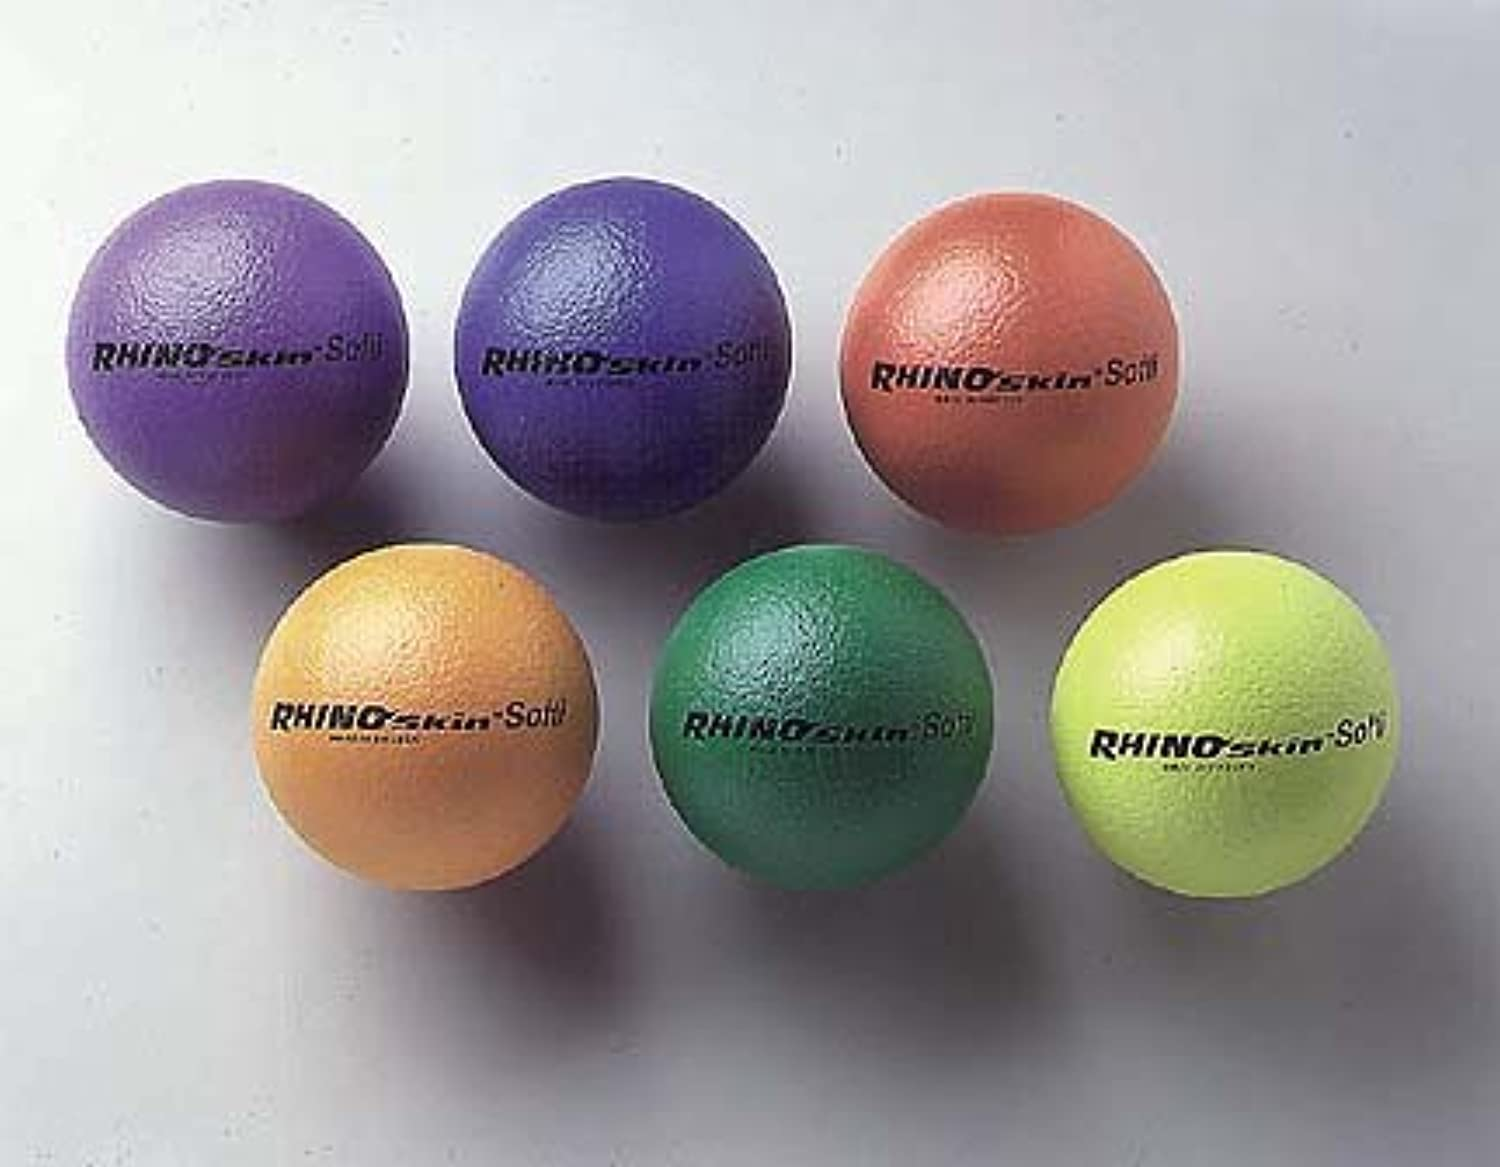 16cm Rhino Skin Softi Foam Ball - Set of 3 Balls